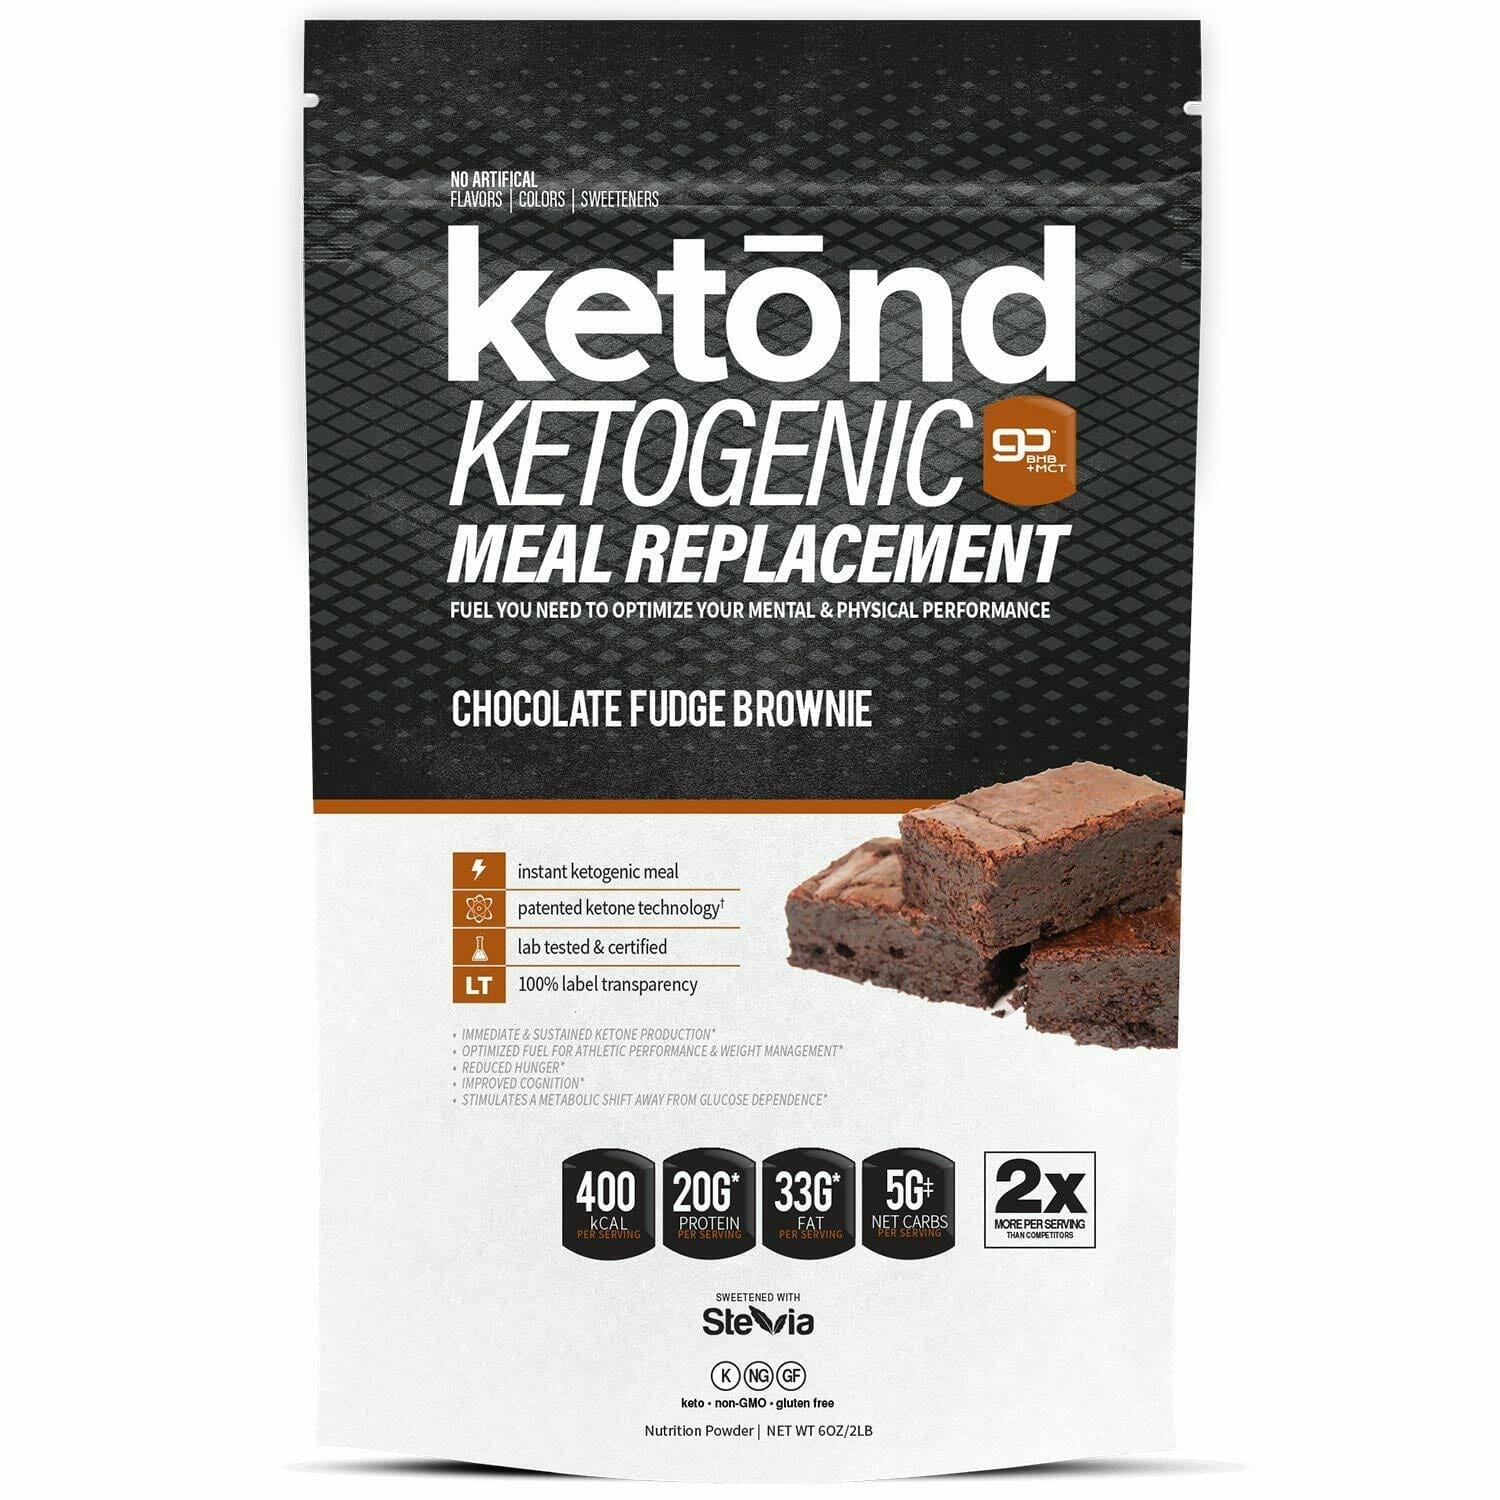 Best 15 Low Carb Keto Meal Replacement Shakes In 2020